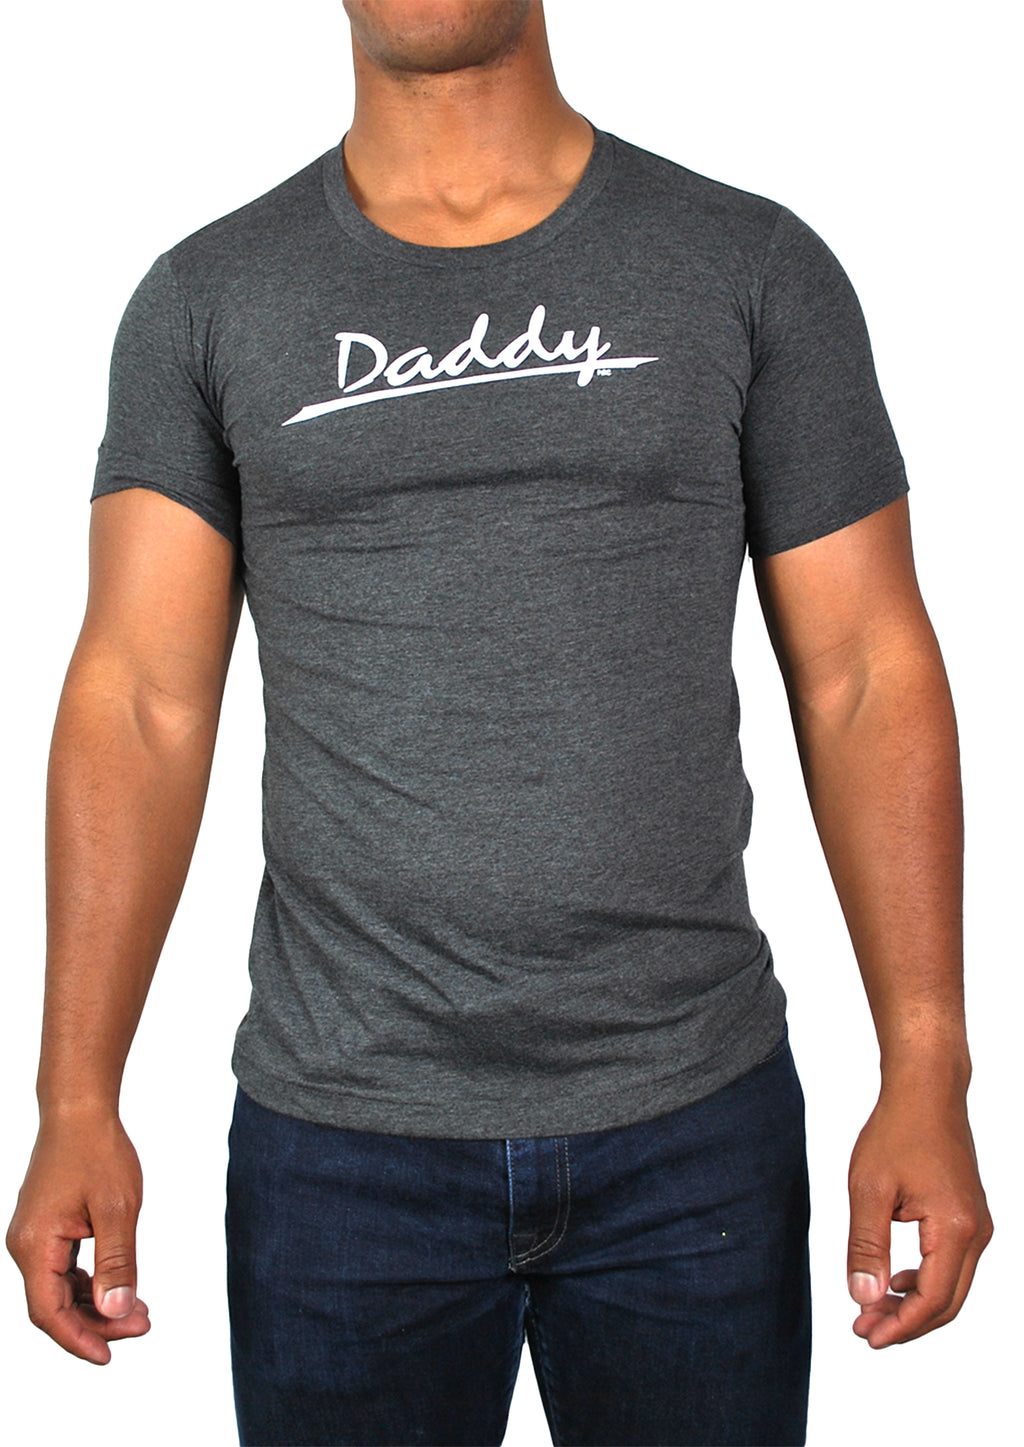 Daddy Tee (Dark Gray Heather)